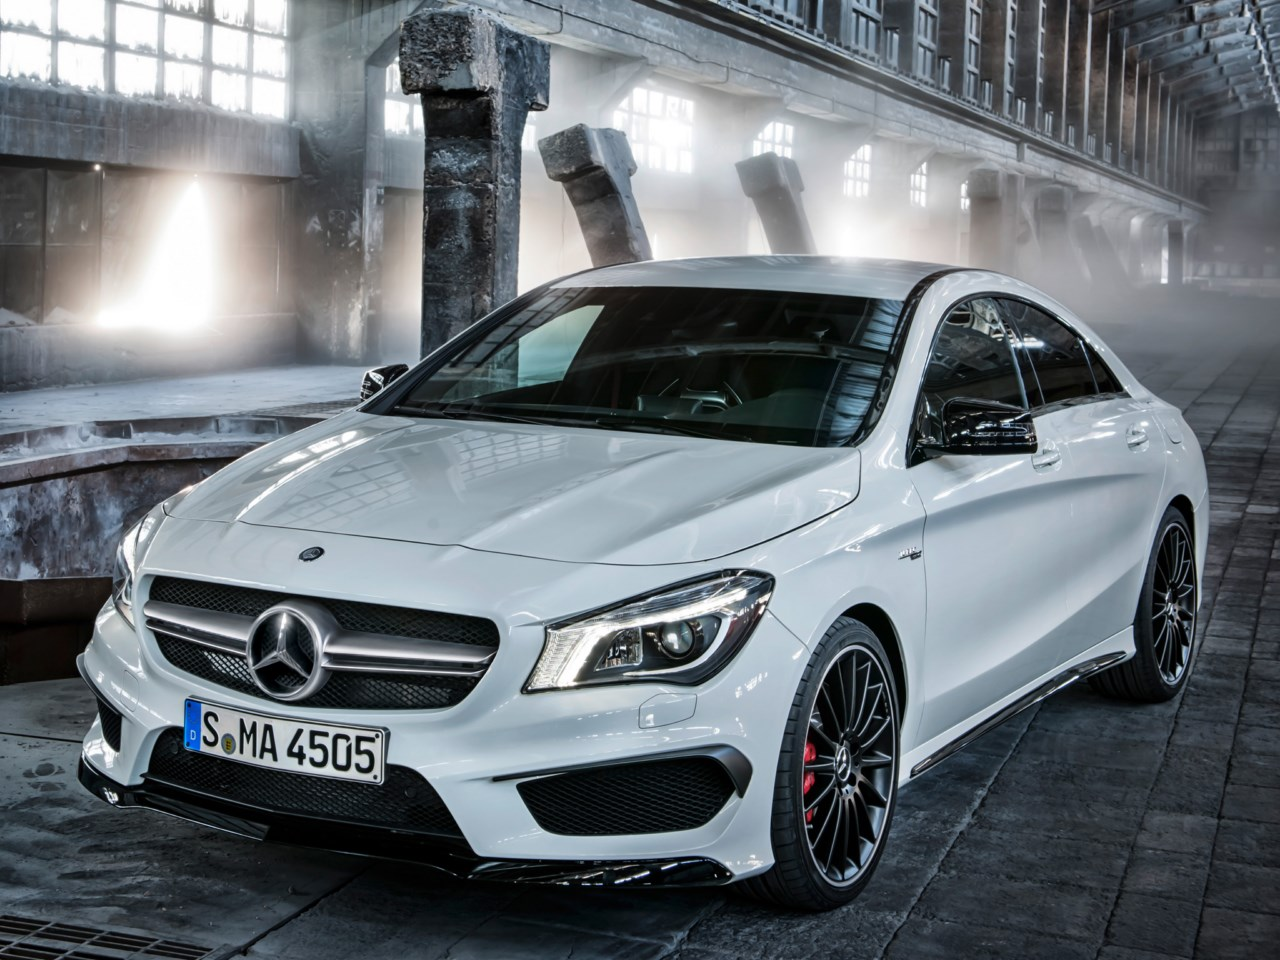 Mercedes benz cla 45 amg revista del motor for Mercedes benz amg cla 45